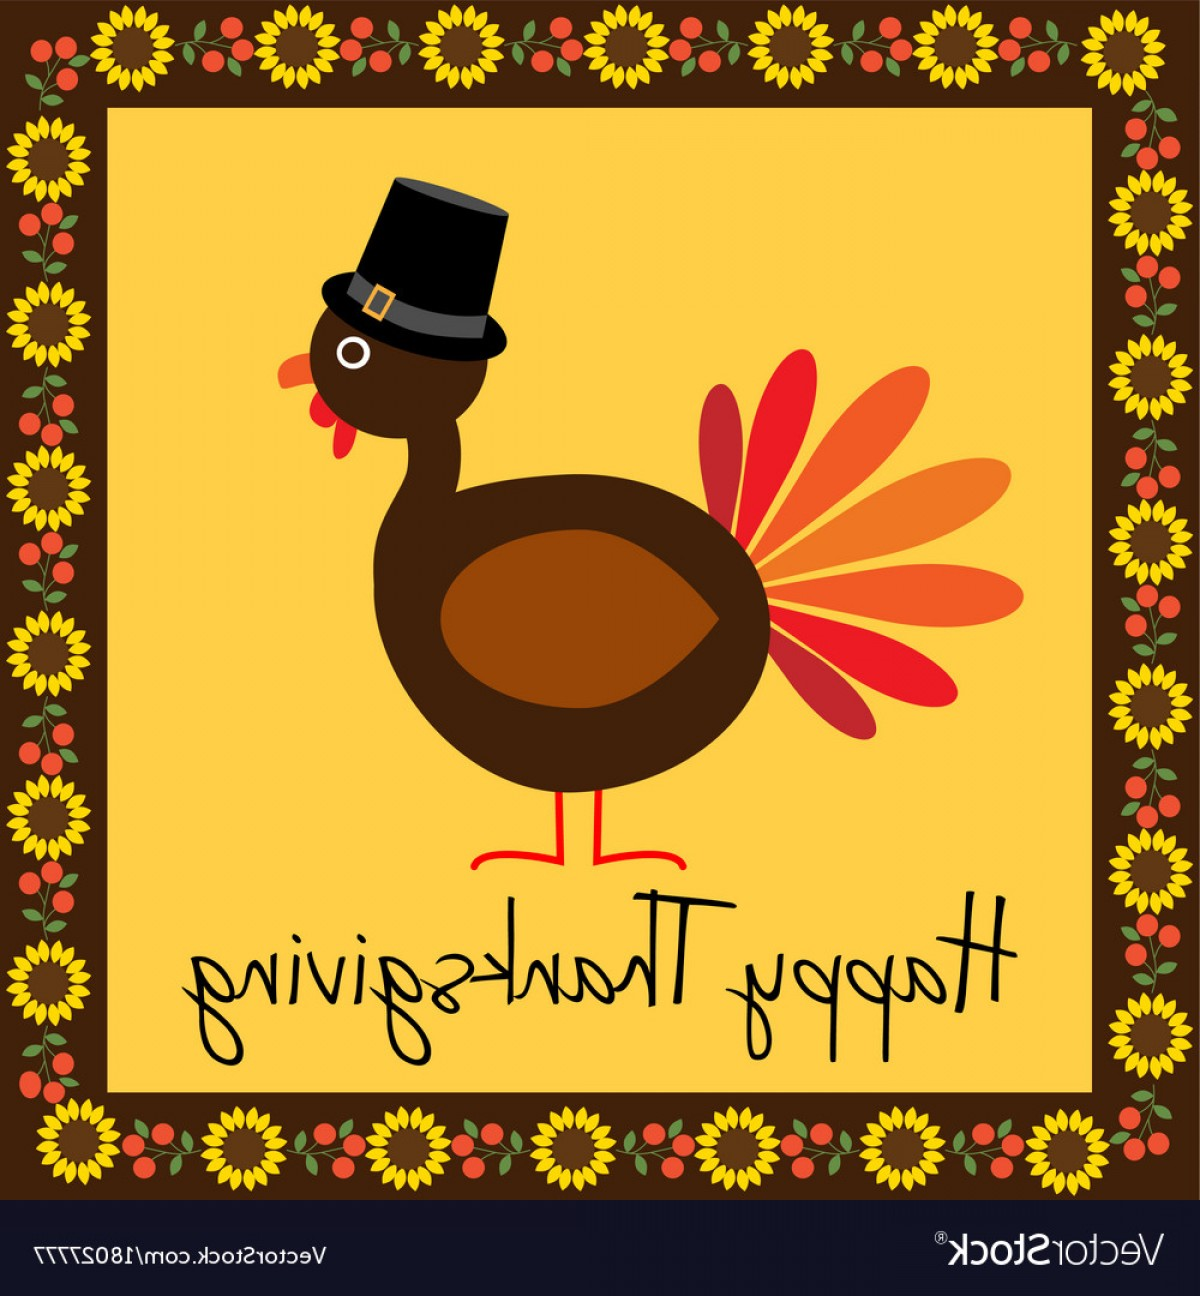 Thanksgiving Border Vector: Happy Thanksgiving Turkey With Sunflower Border Vector